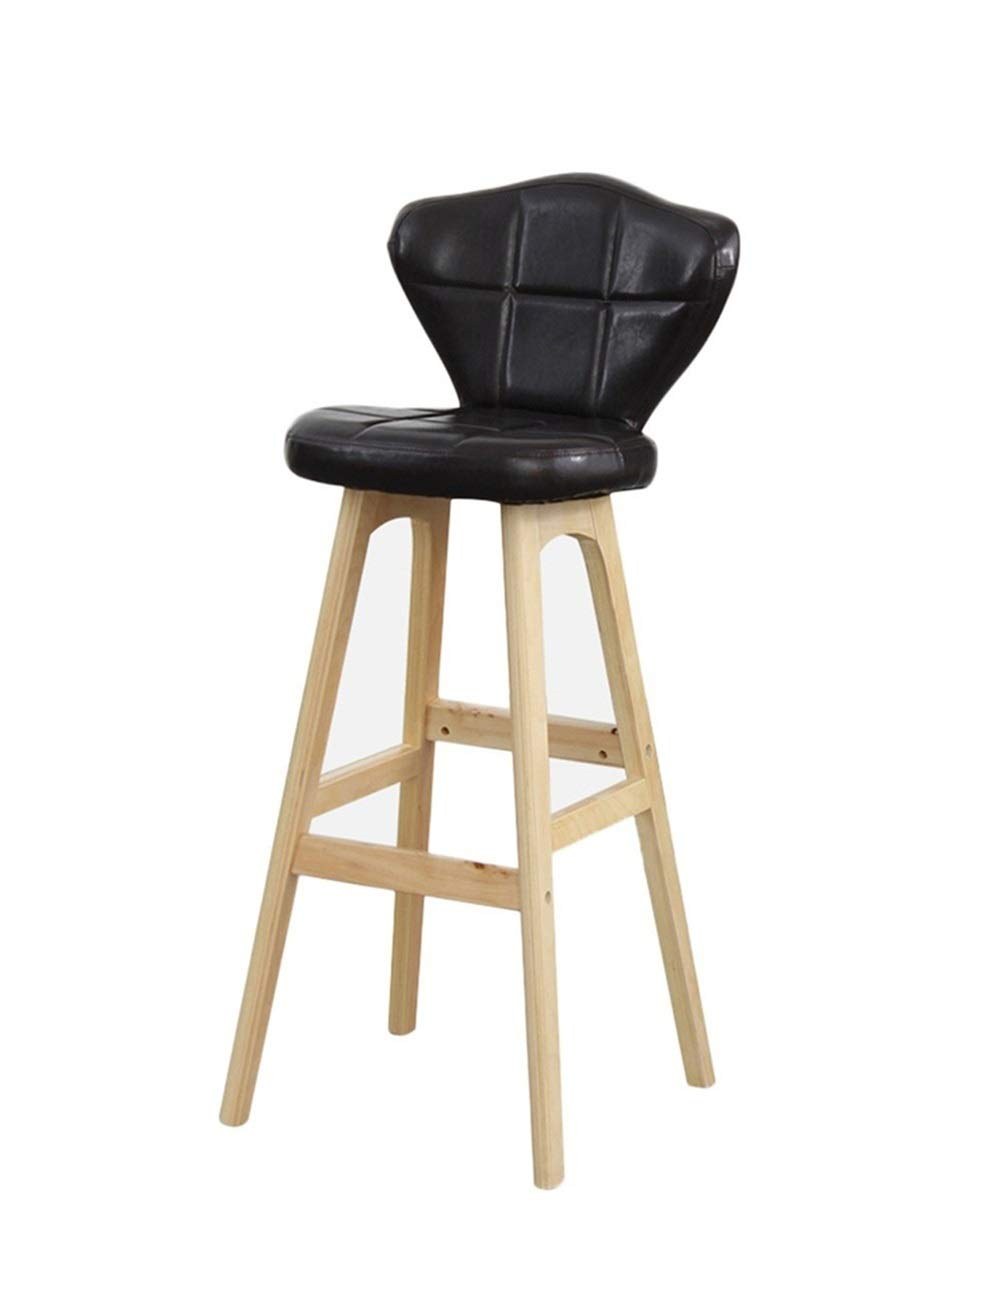 Wpjpzwj777 Barstools Wooden bar Chair with backrest, bar Kitchen Counter Height, a Variety of Colors to Choose from for a Variety of Occasions (Color : 2) by Wpjpzwj777